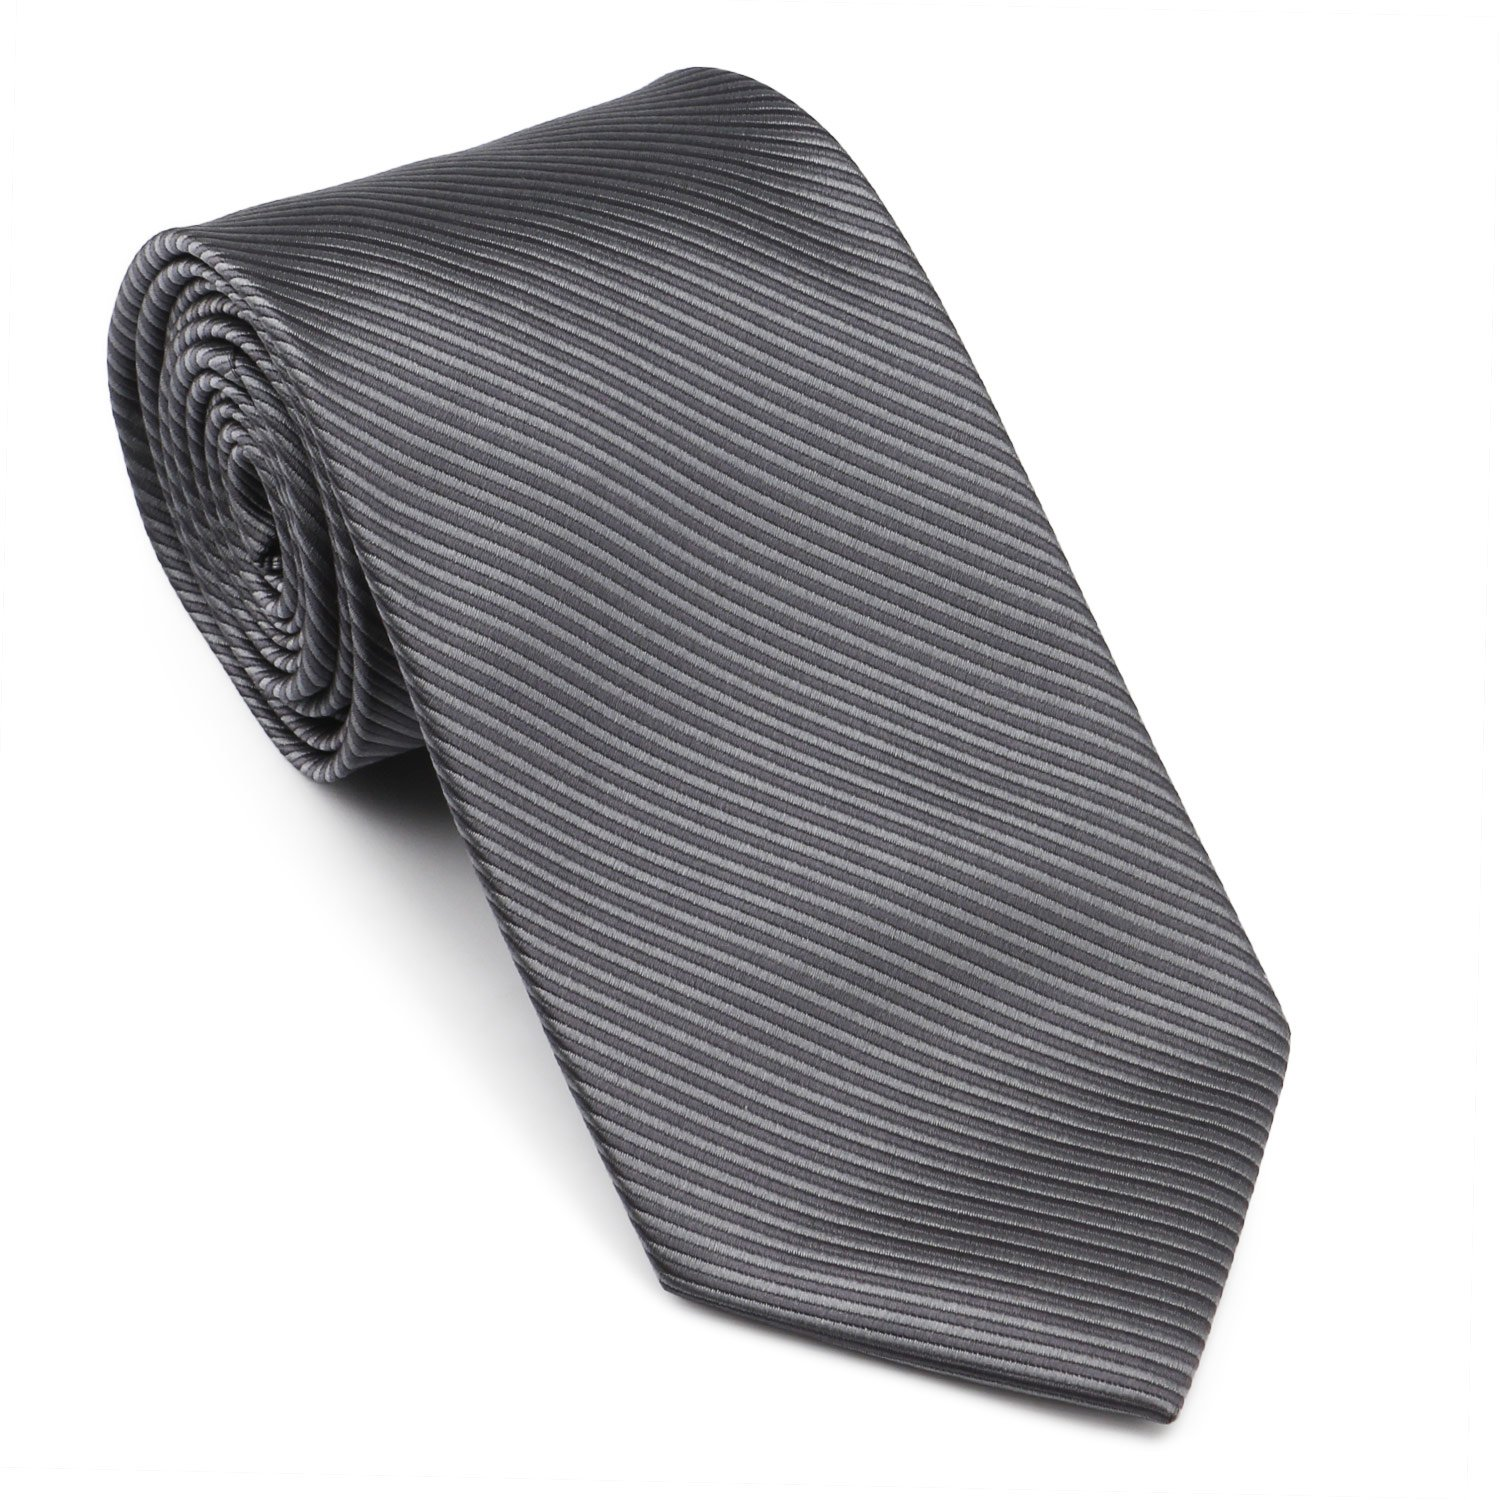 Mens Necktie Classic Striped Neckties, 54'' Long Polyester Solid Grey Neck Tie, Seasonless Formal Casual Business Necktie by Segbeauty (Image #2)